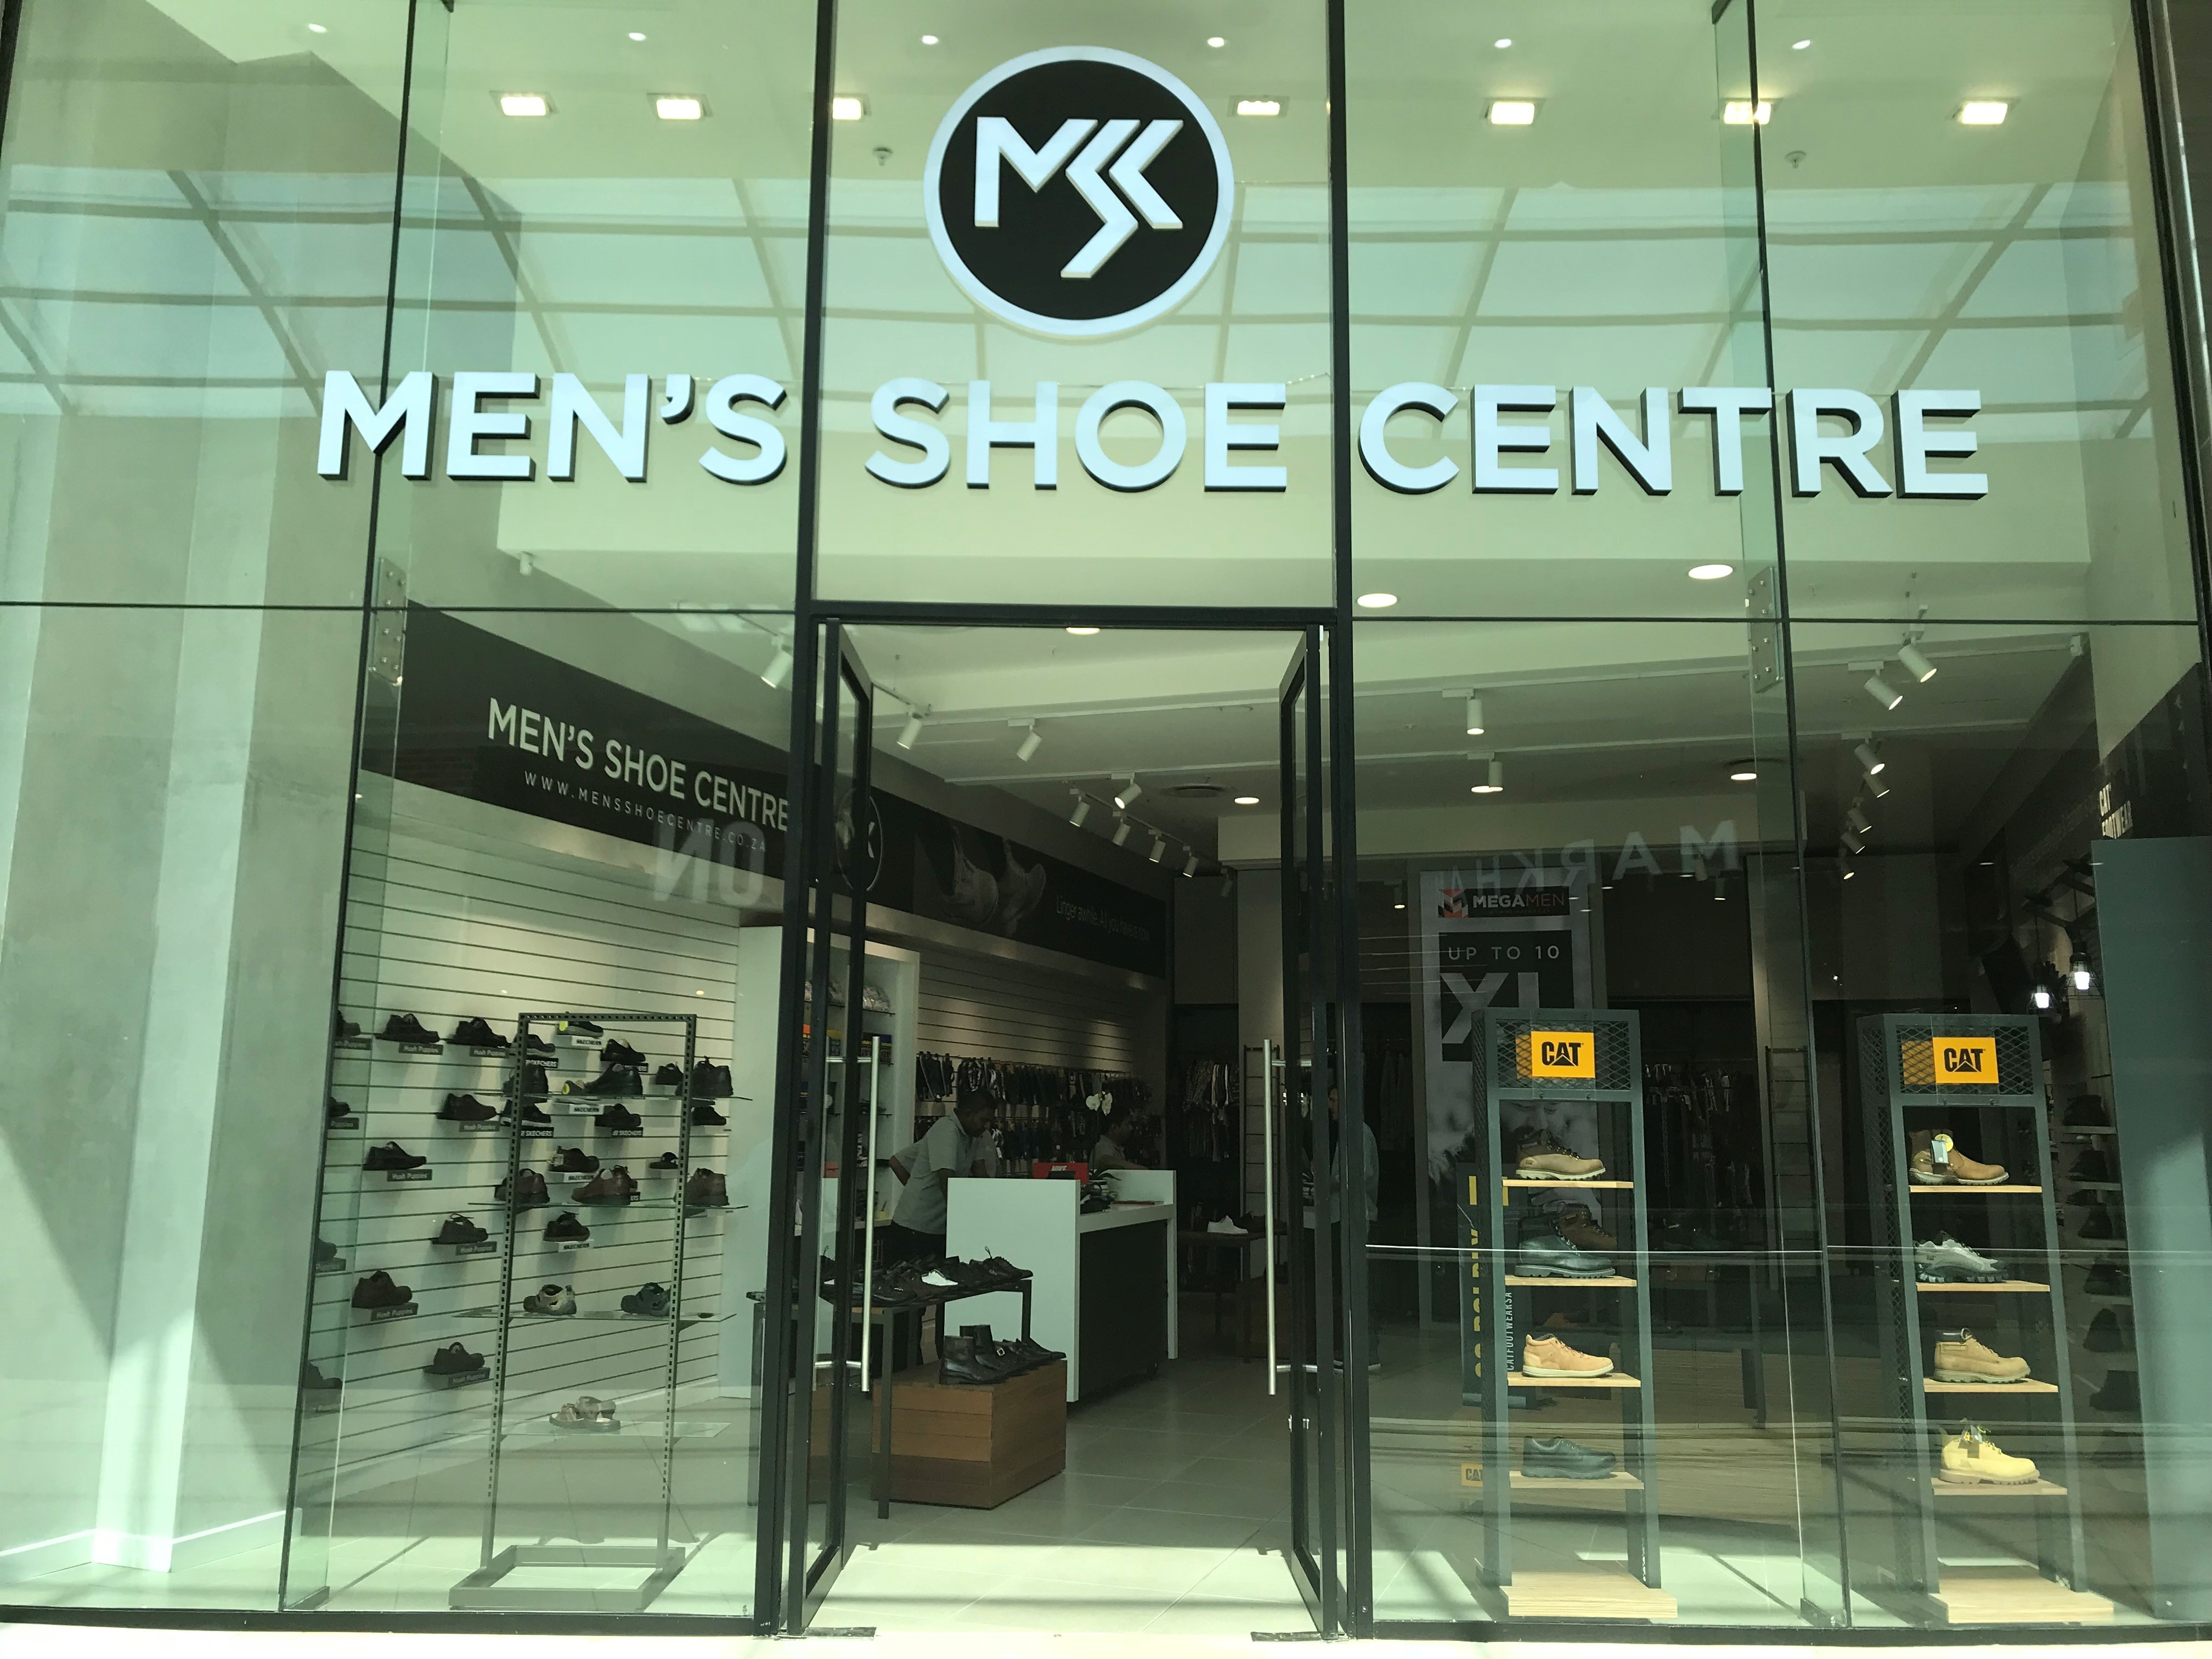 Men's Shoe Centre